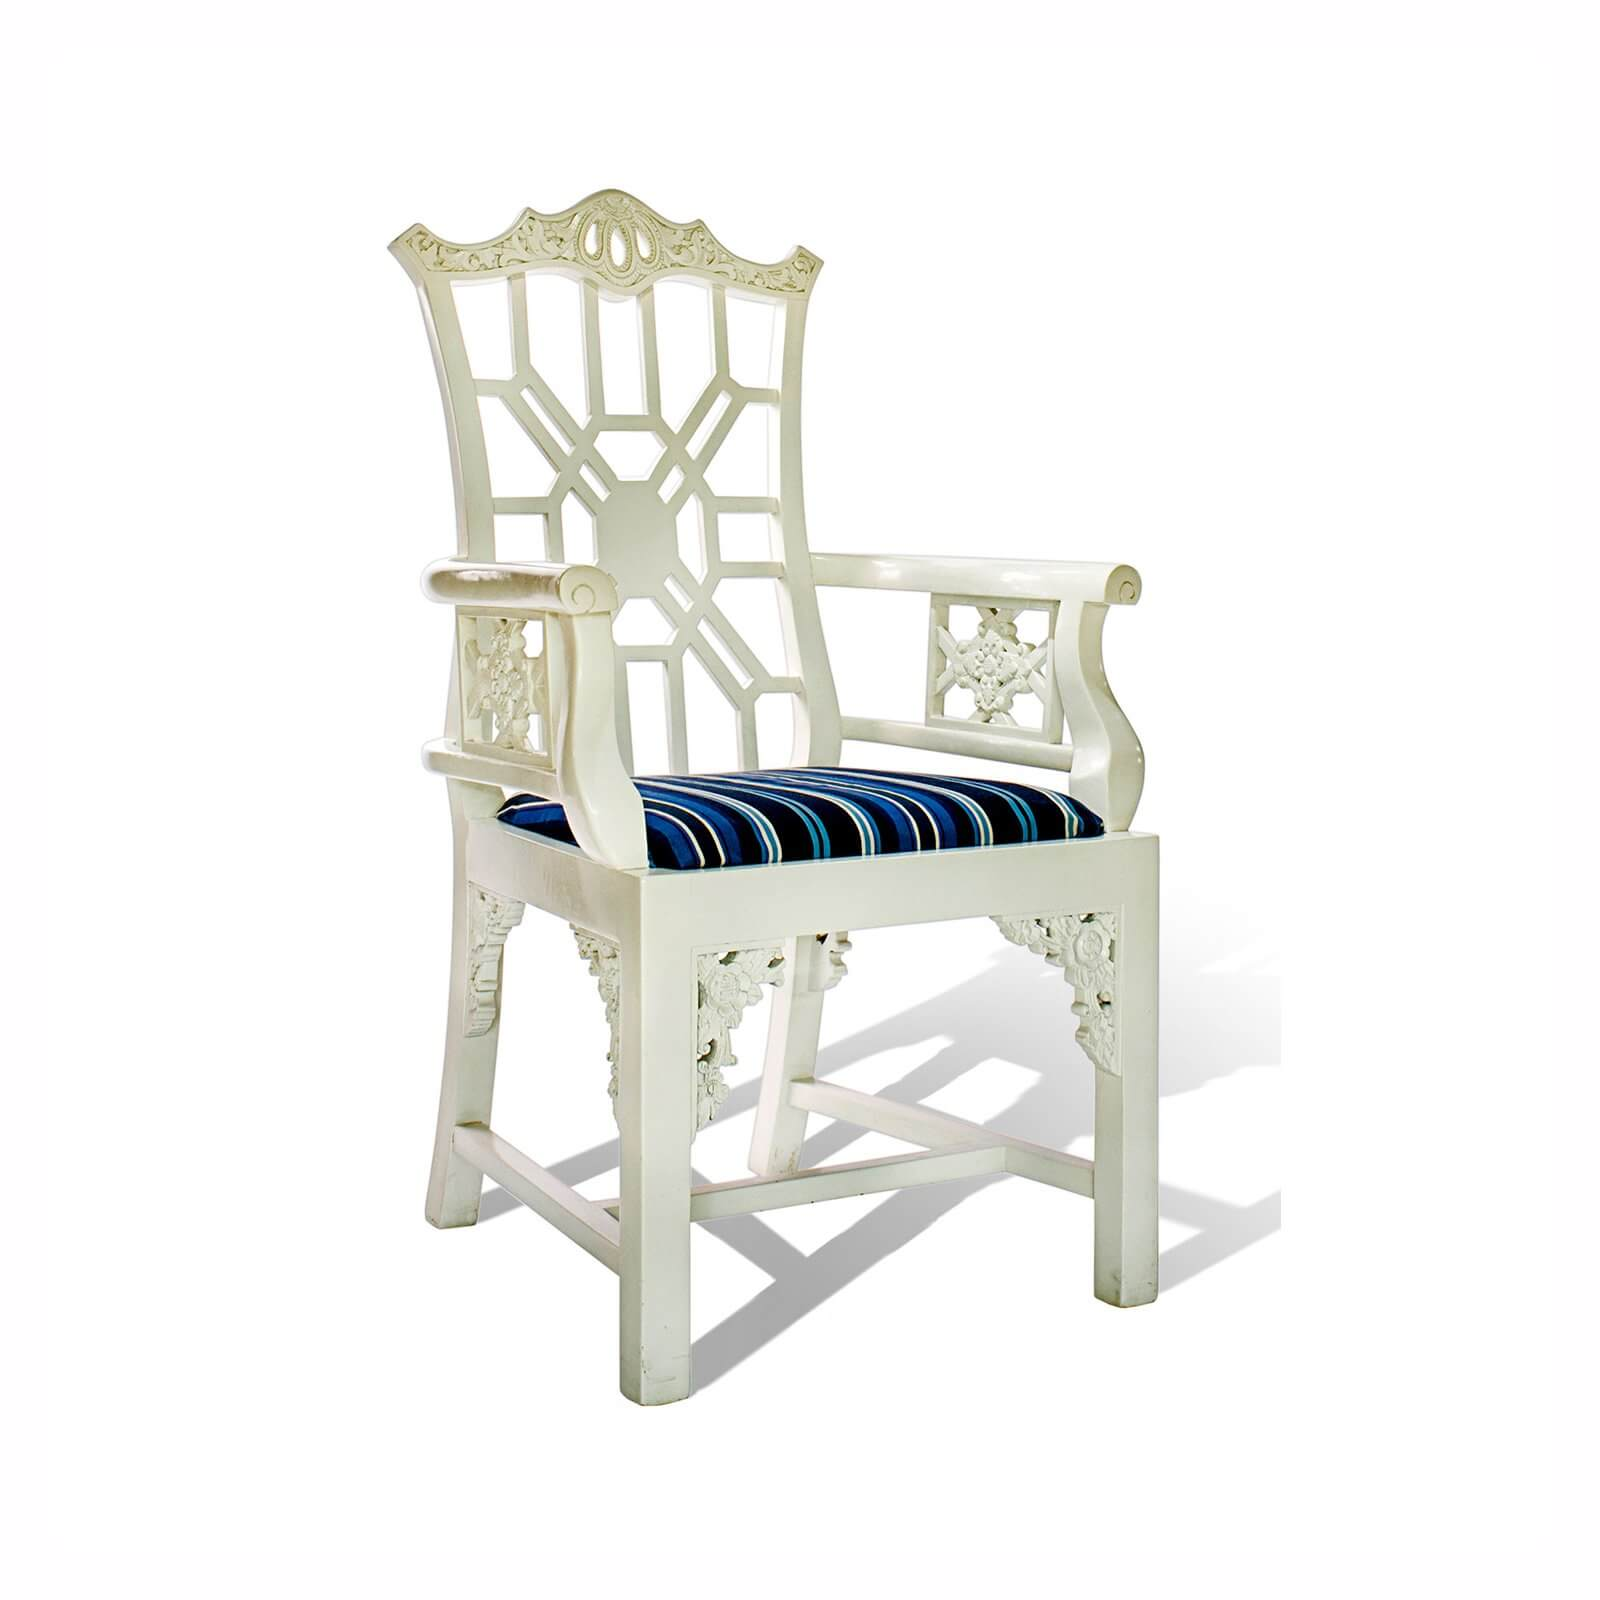 CONSERVATORY DINING CHAIR - STUART MEMBERY HOME COLLECTION